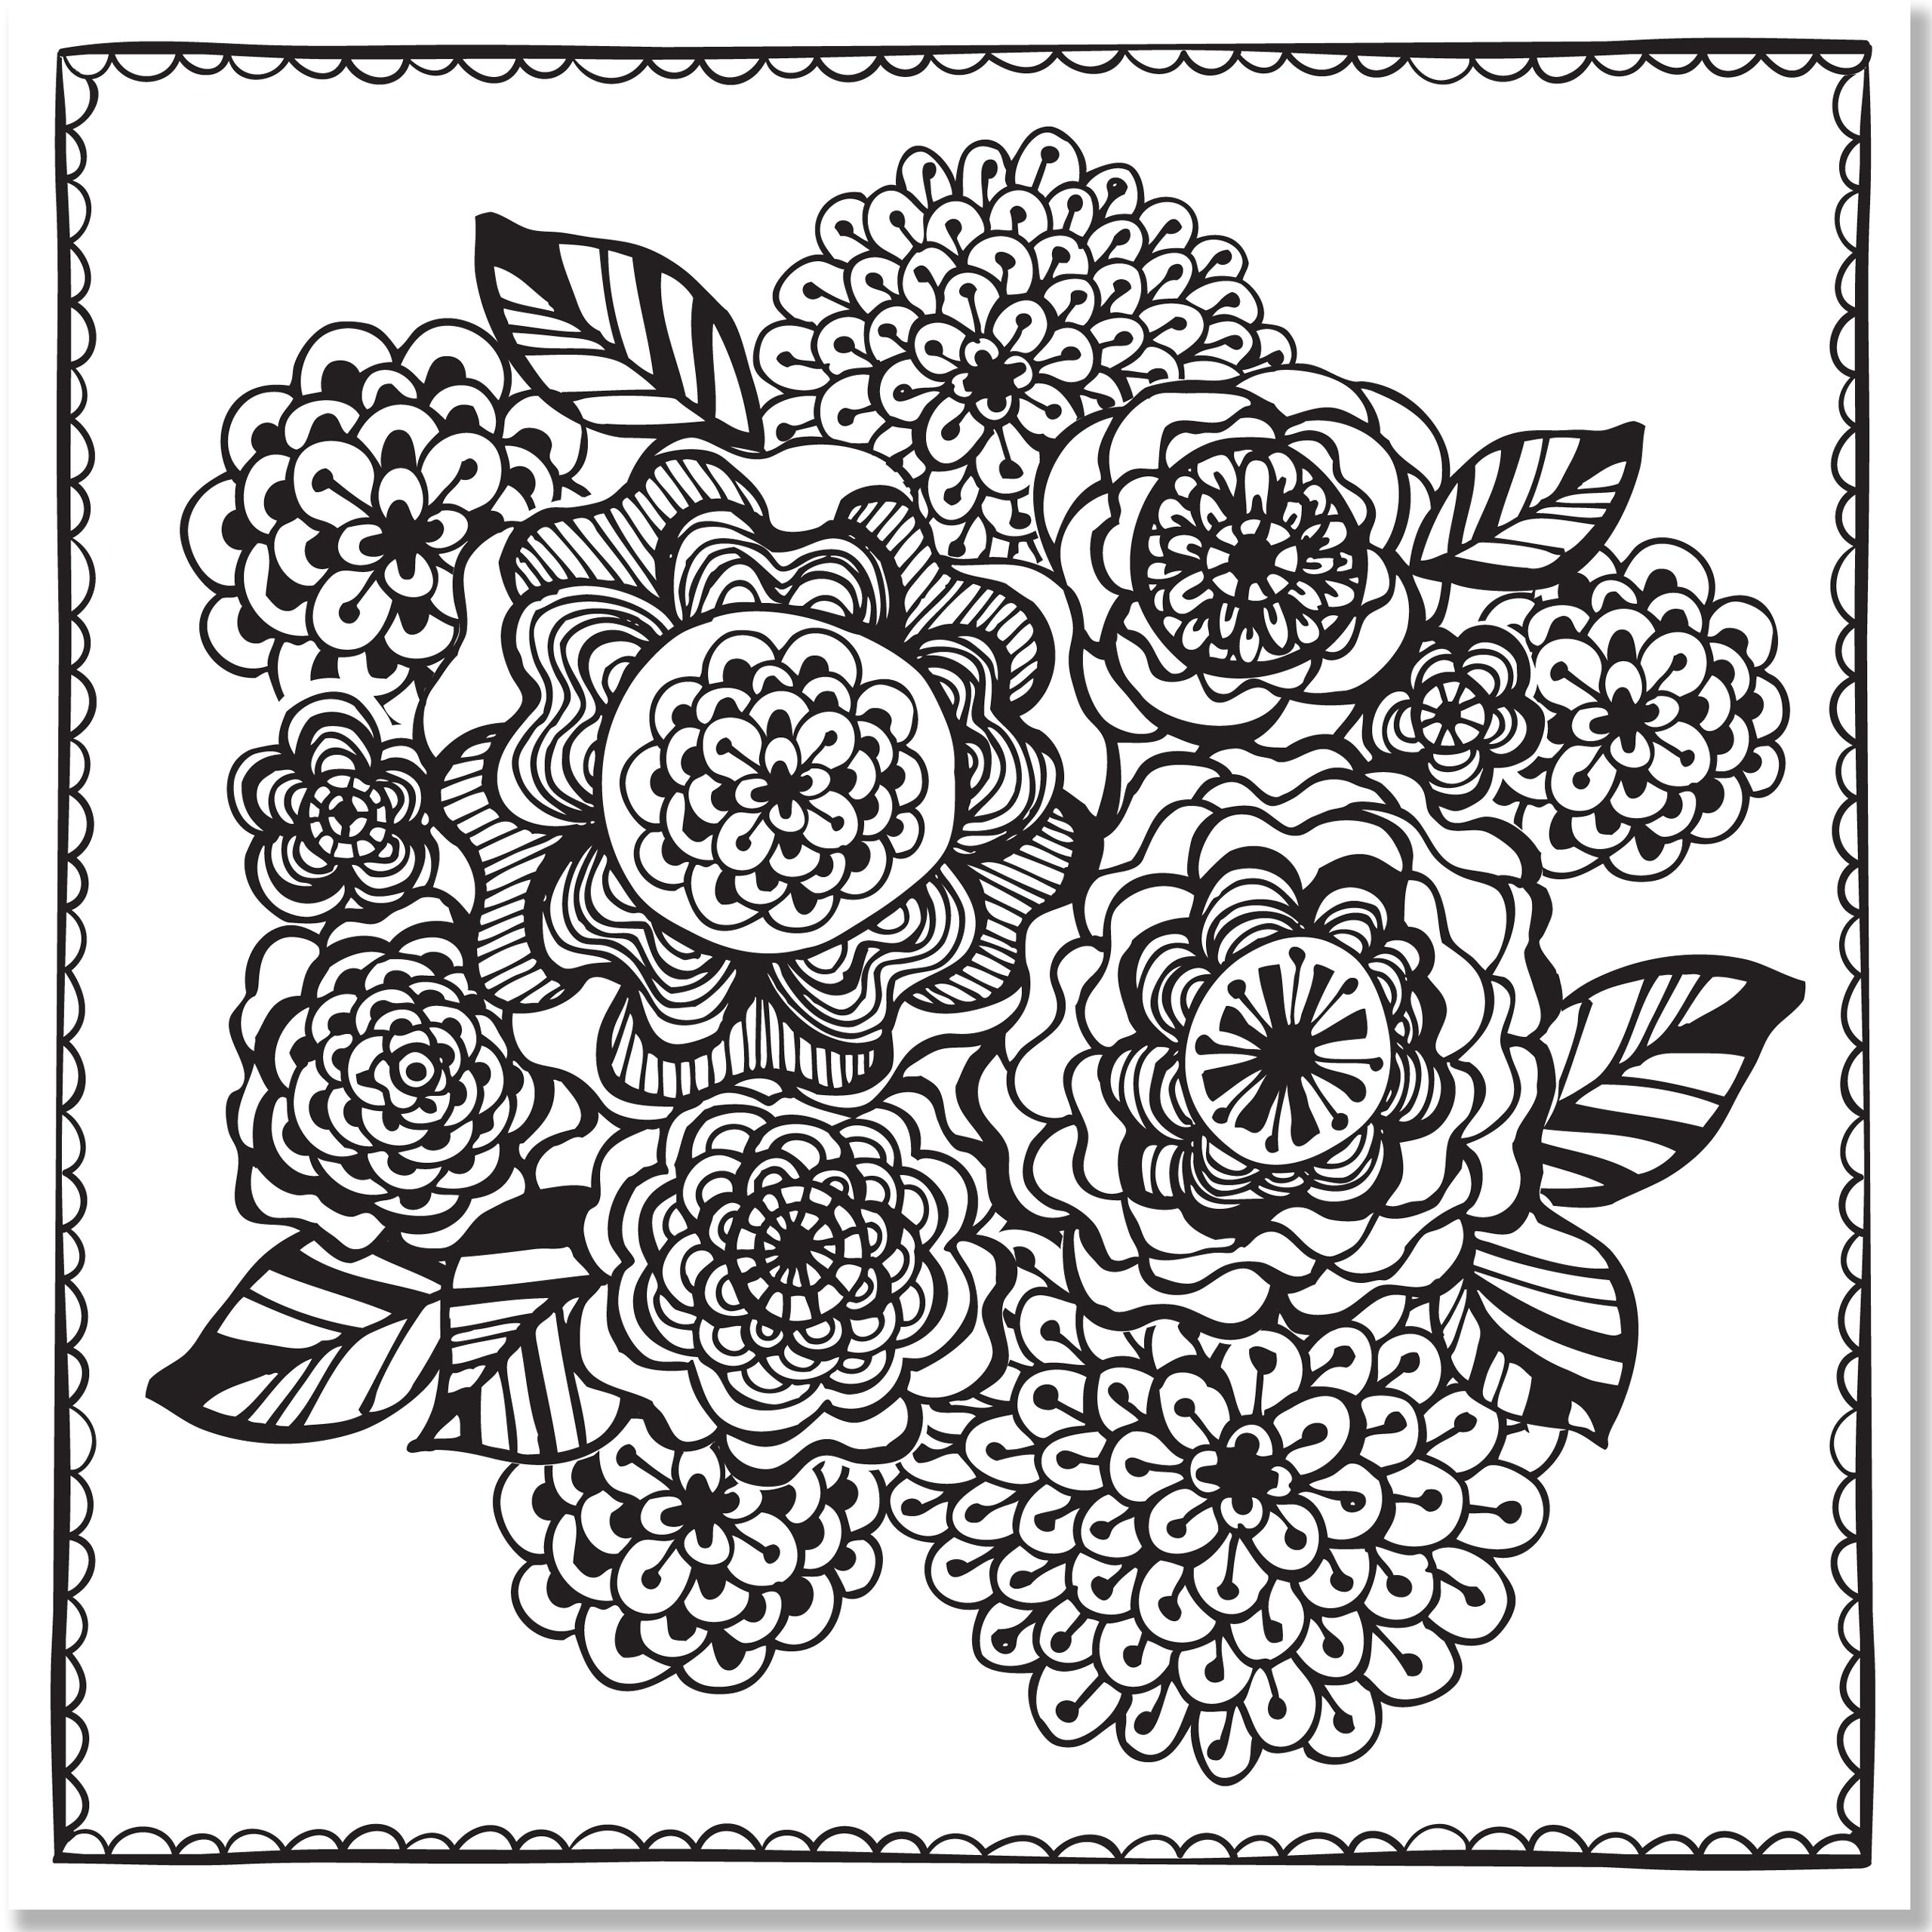 amazoncom joyful designs adult coloring book 31 stress relieving designs studio 9781441317568 joy ting books - Design Coloring Pages